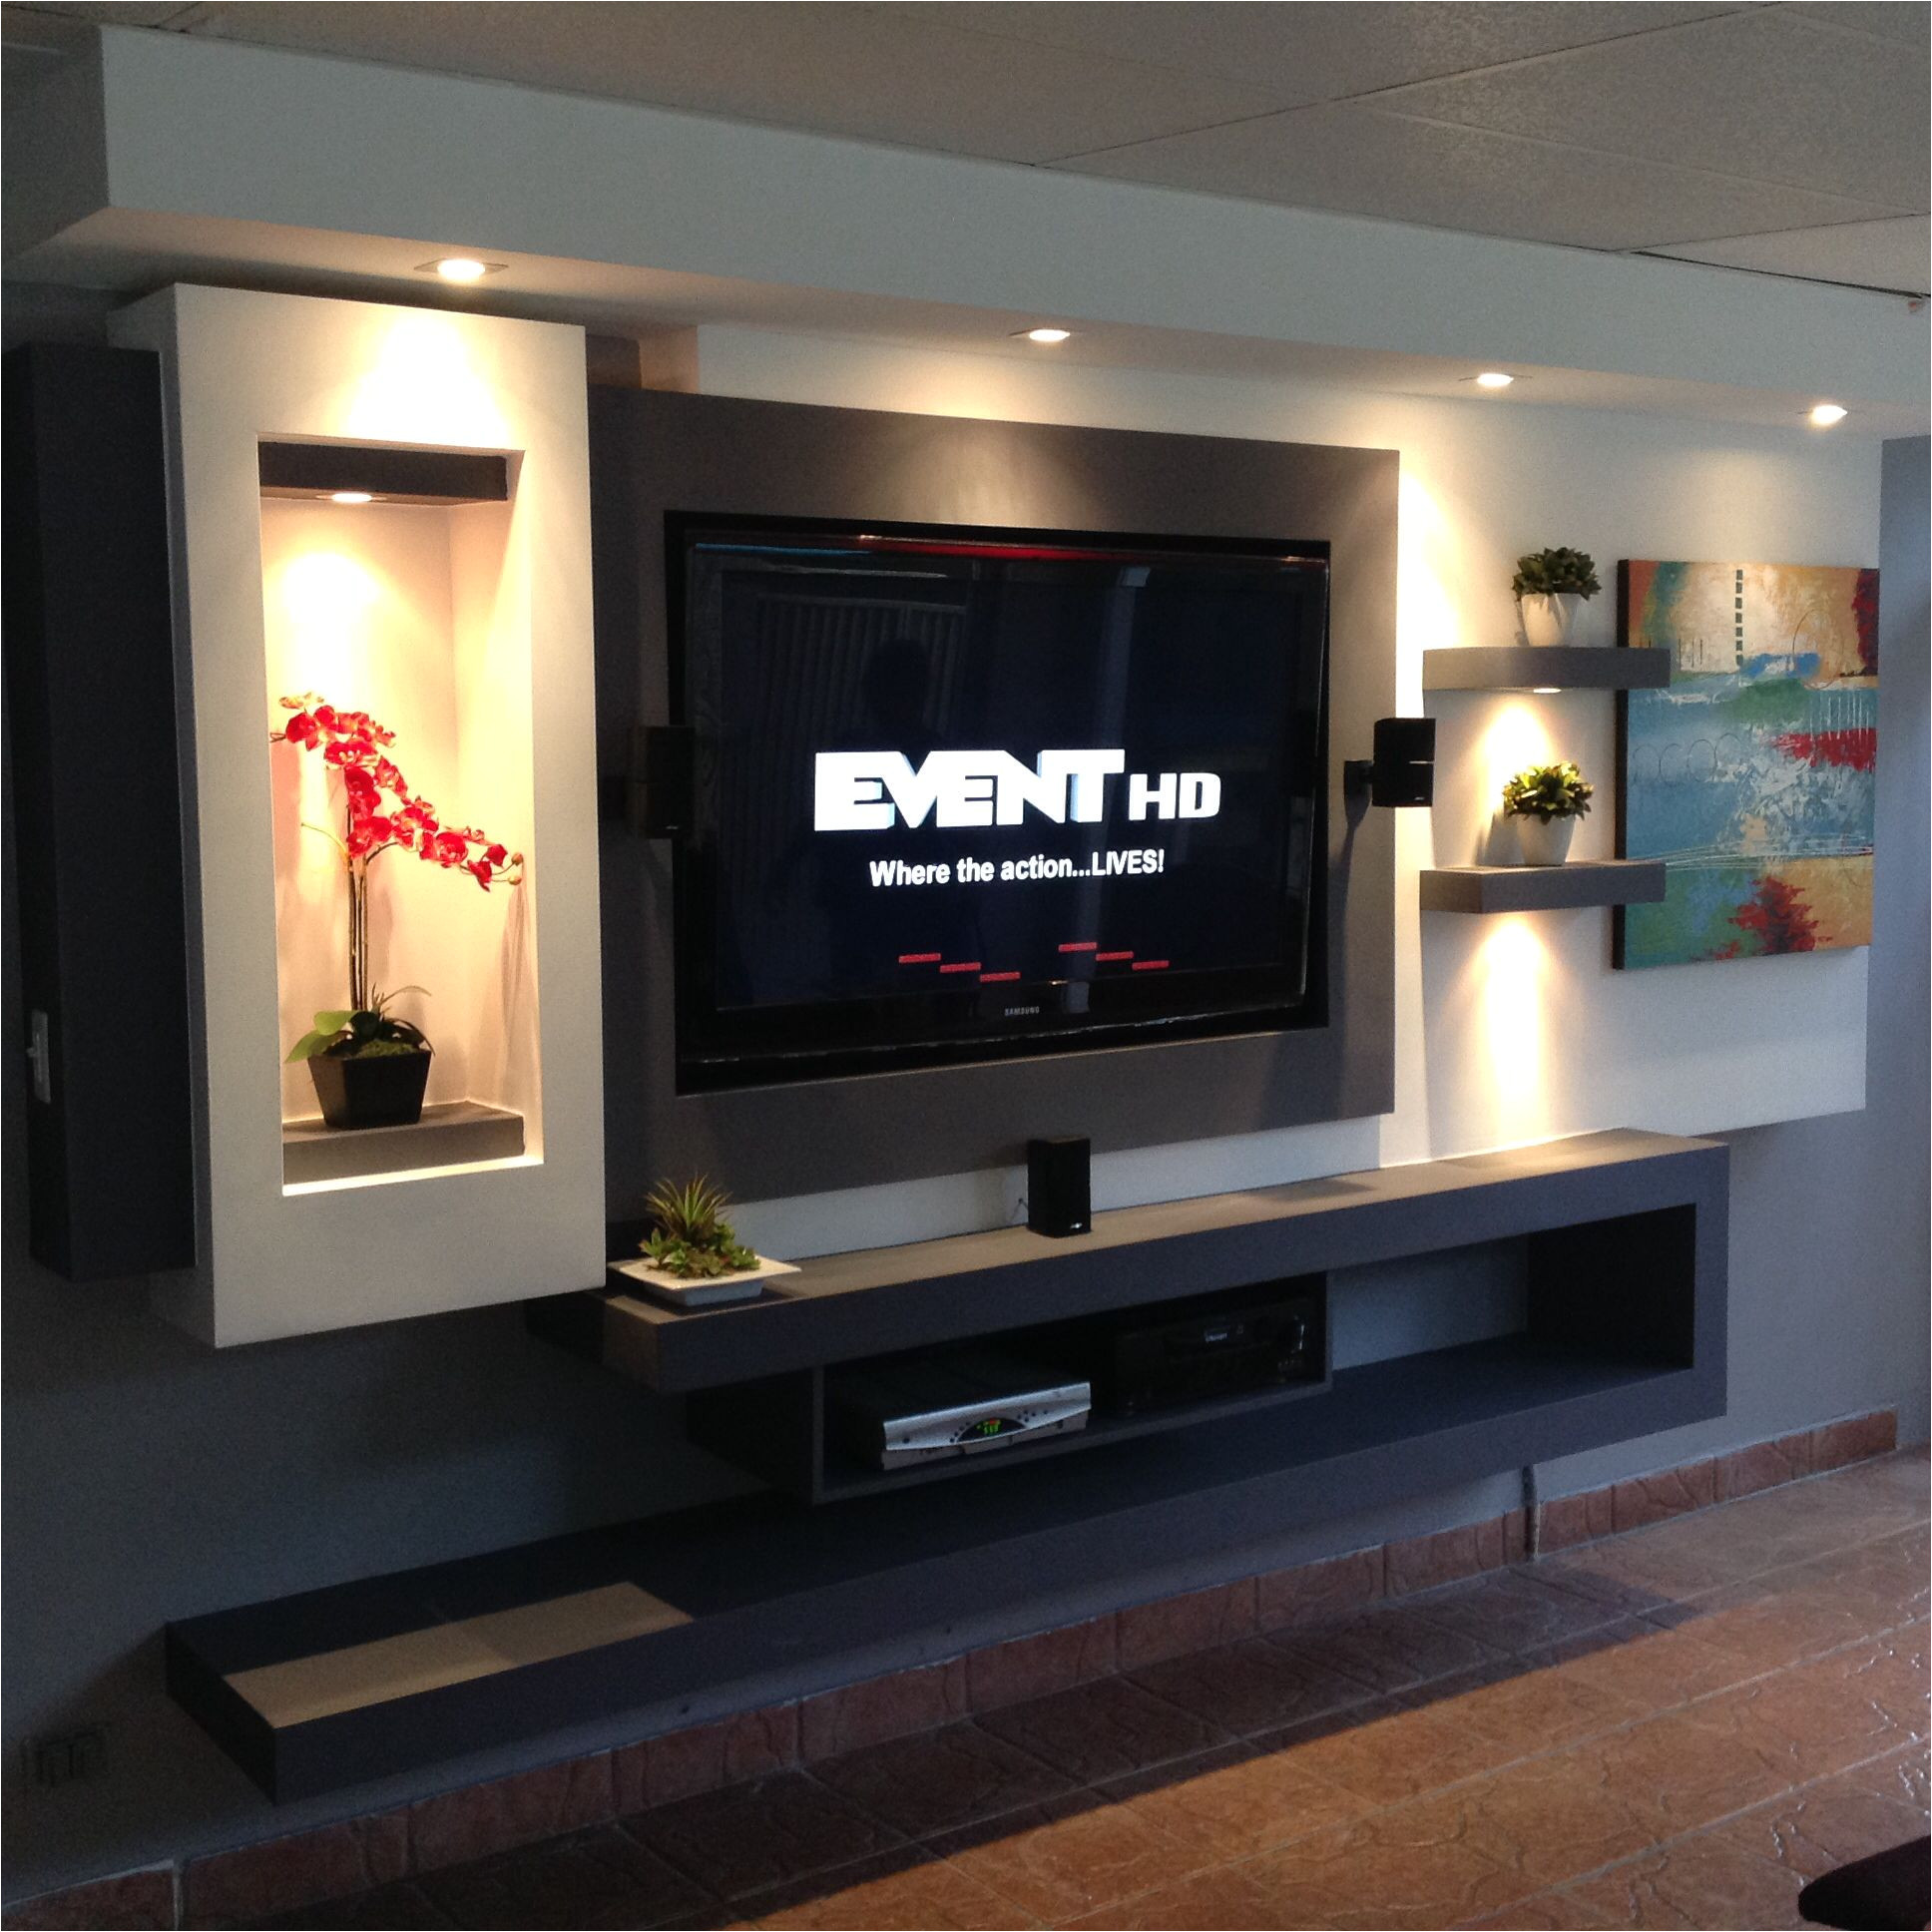 tv in wall made with gypsum board